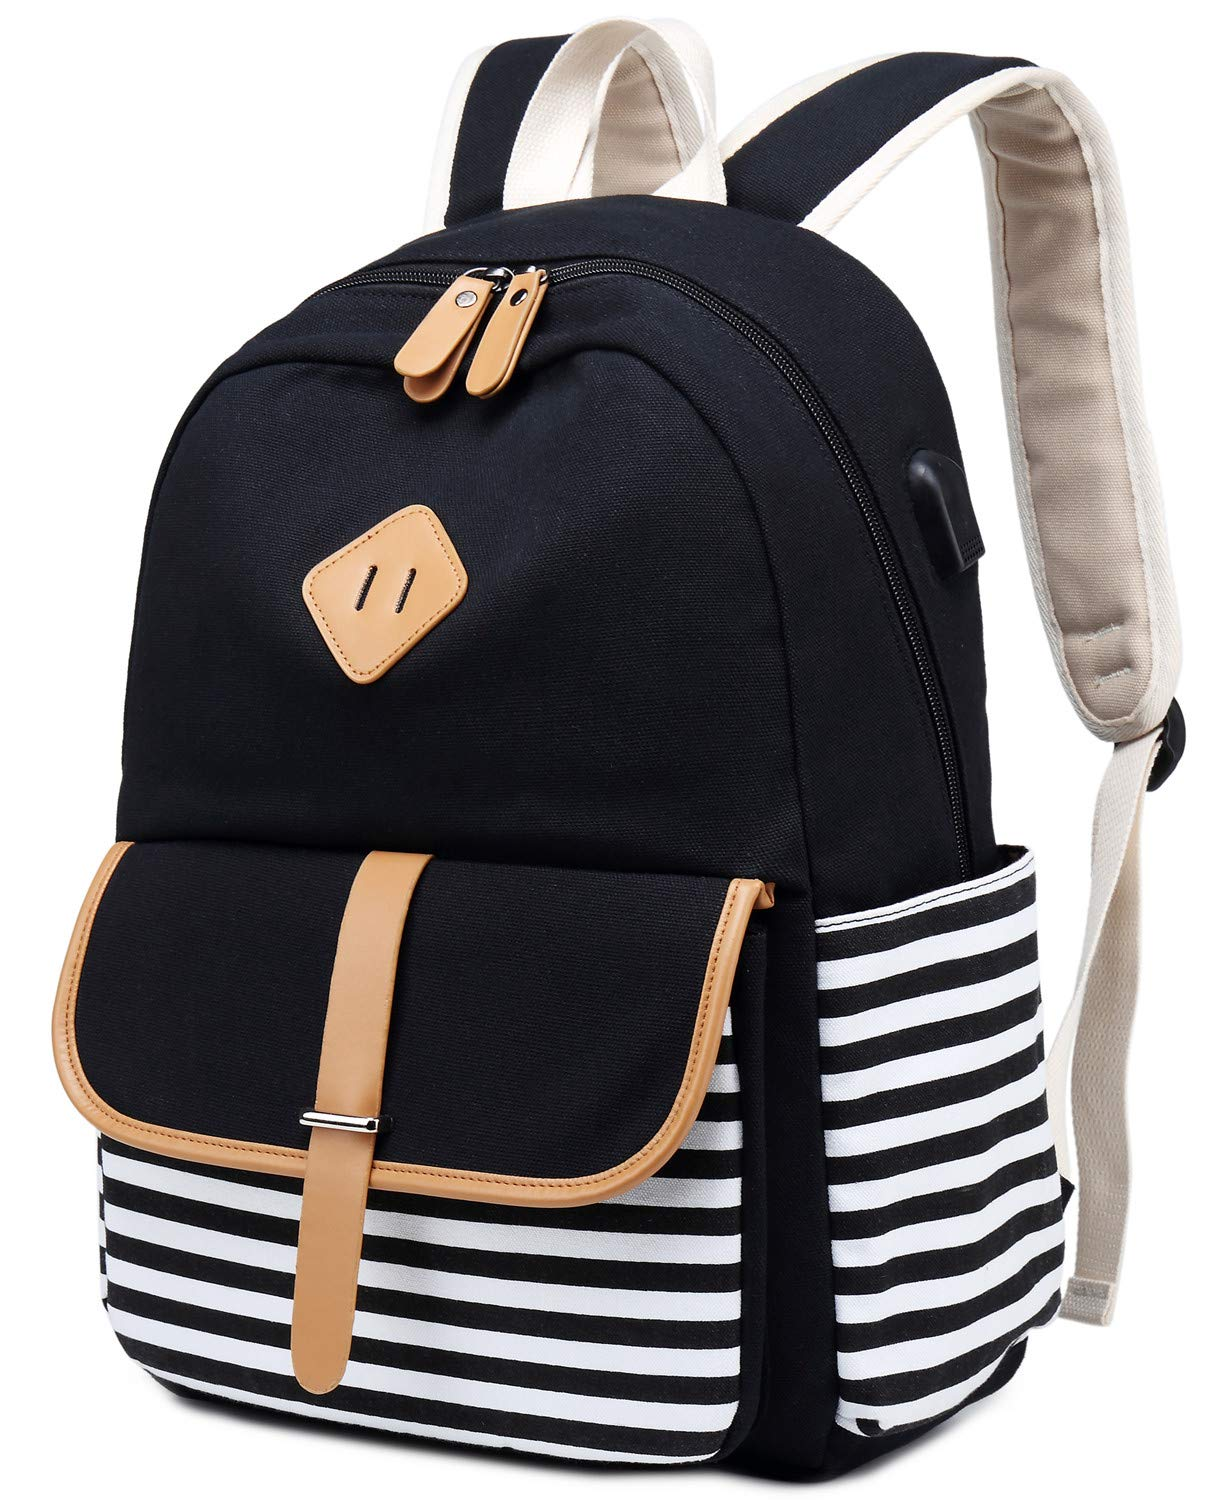 16d6614424cb Canvas Travel Laptop Backpacks Womens College Backpack School Bag 15 inch  USB Daypack Outdoor With Trolley Case Slot - Travel